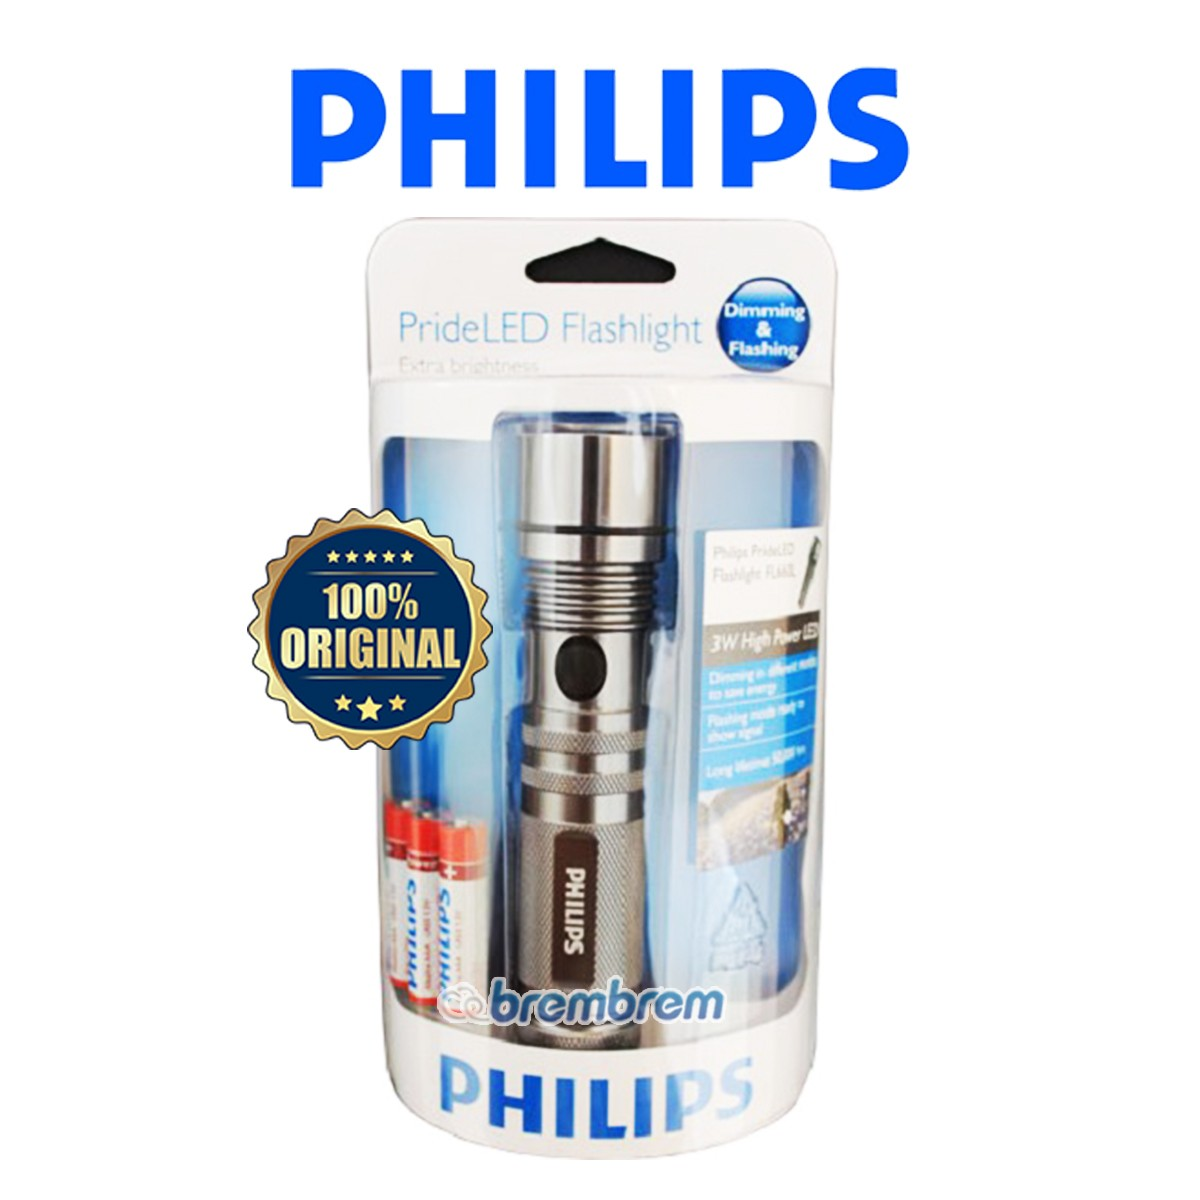 PHILIPS TORCH PRIDELED TITANIUM - LED FLASH LIGHT